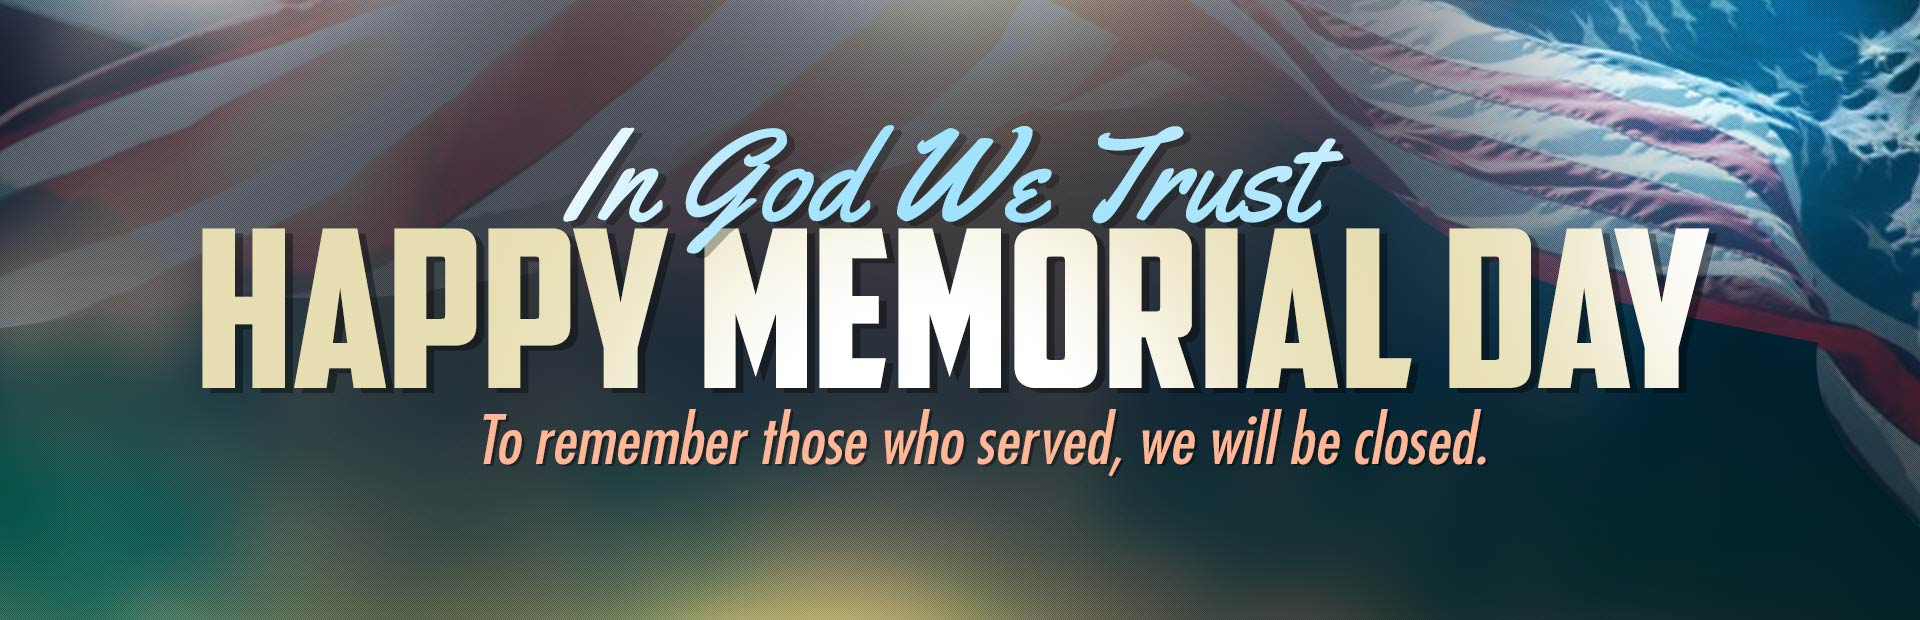 Happy Memorial Day: To remember those who served, we will be closed.